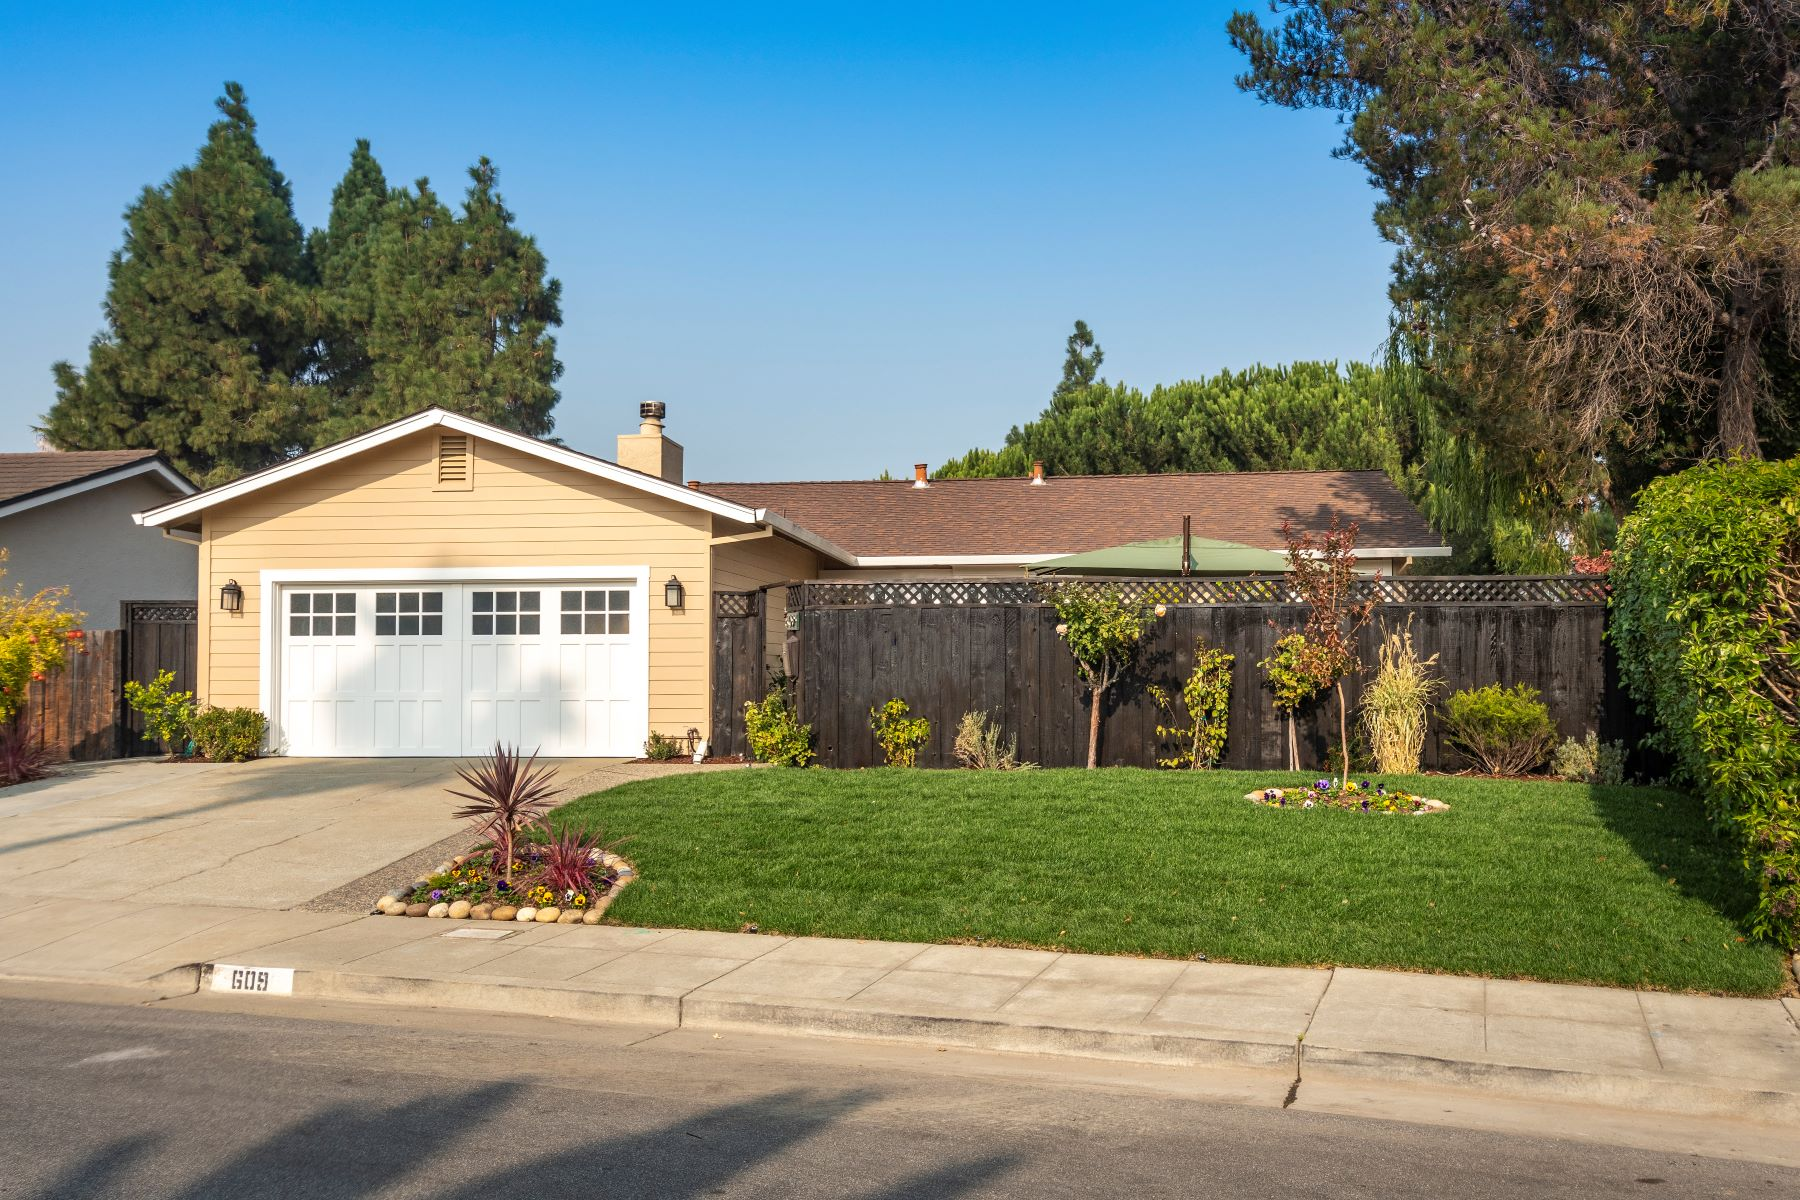 Single Family Home for Active at Adorable Home in Redwood Shores 609 Teredo Drive Redwood City, California 94065 United States